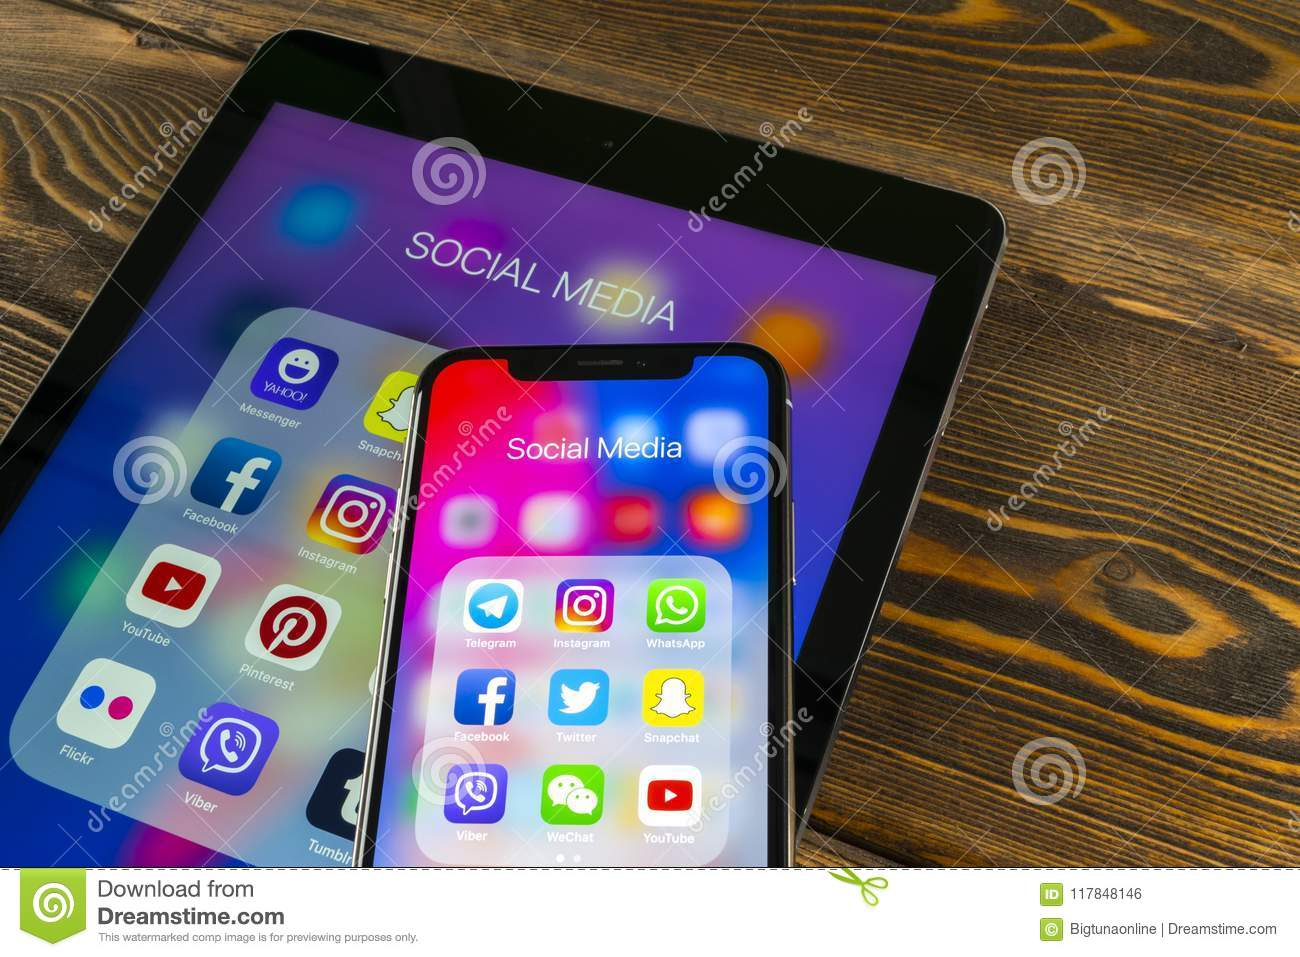 IPad d Apple et iPhone X avec des icônes de facebook social de media, instagram, Twitter, application de snapchat sur l écran Icô